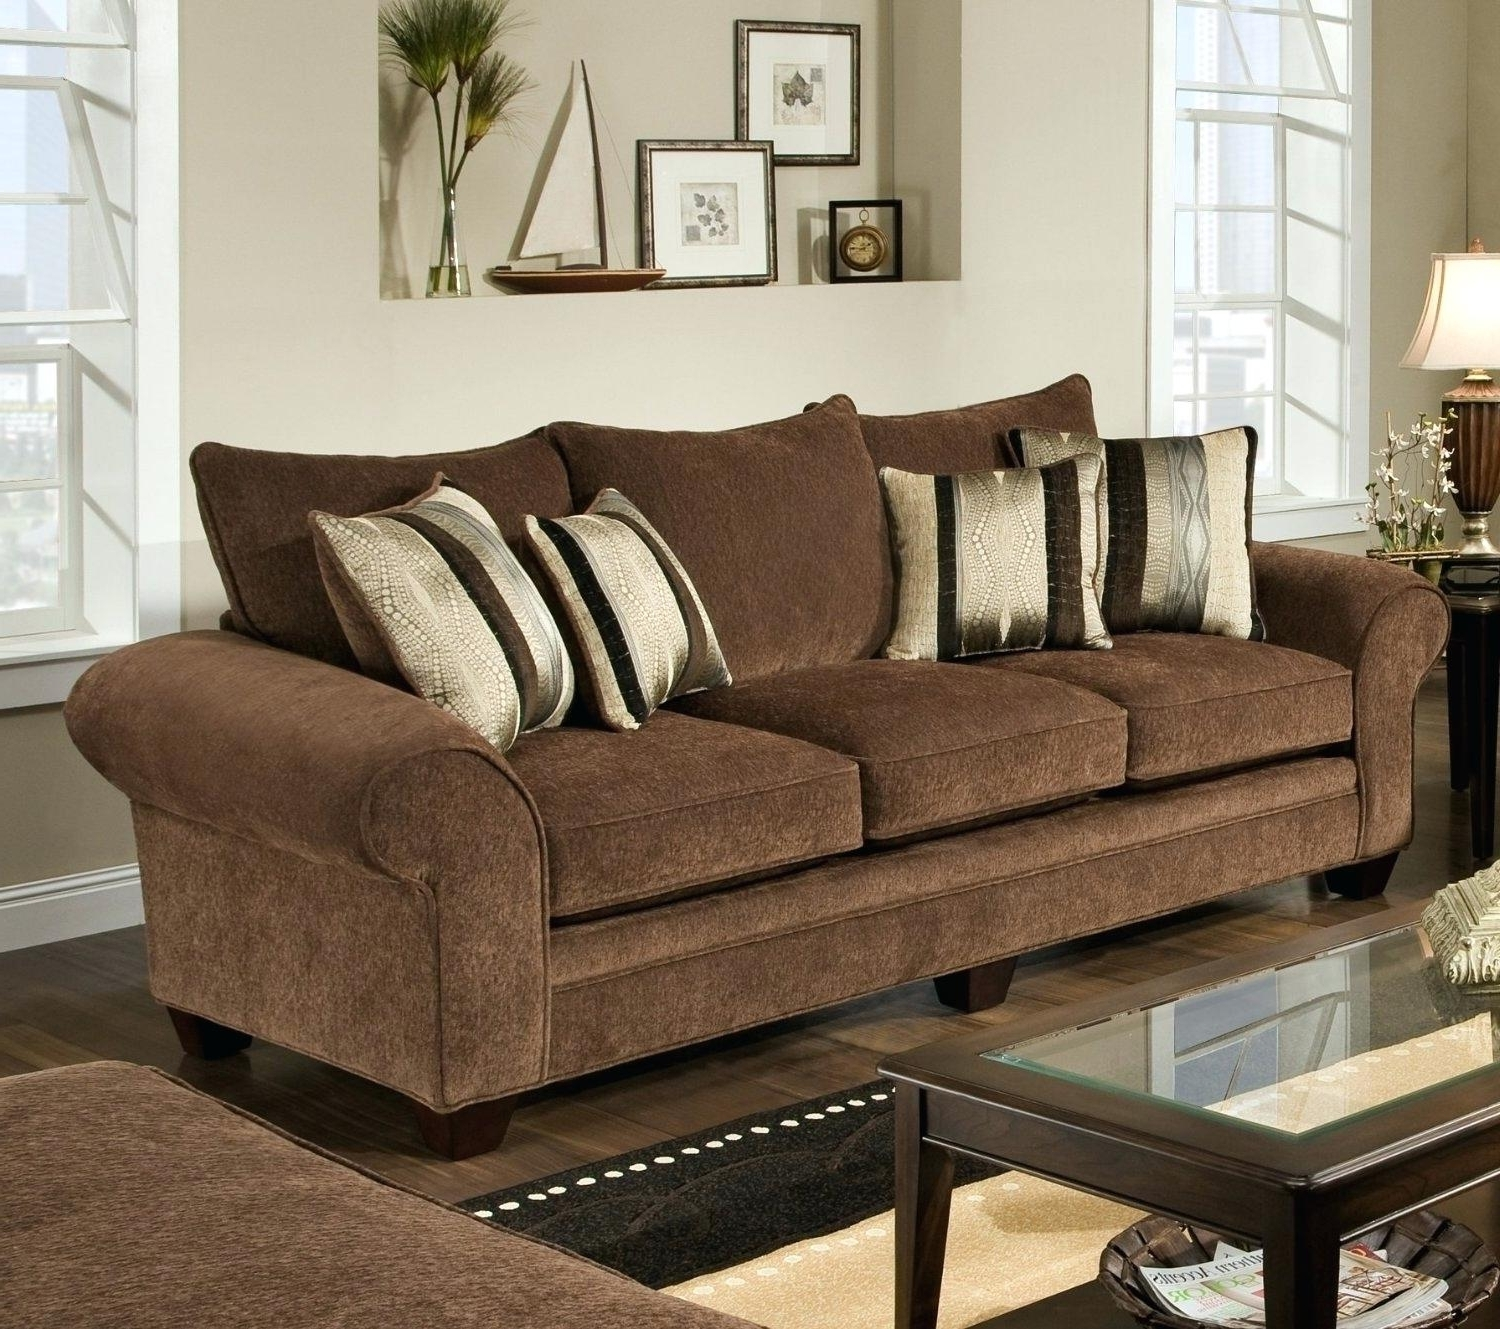 Berkline Sofa Sofas Sams Club Recliner Costco Furniture Recliners Throughout Current Berkline Sofas (View 20 of 20)